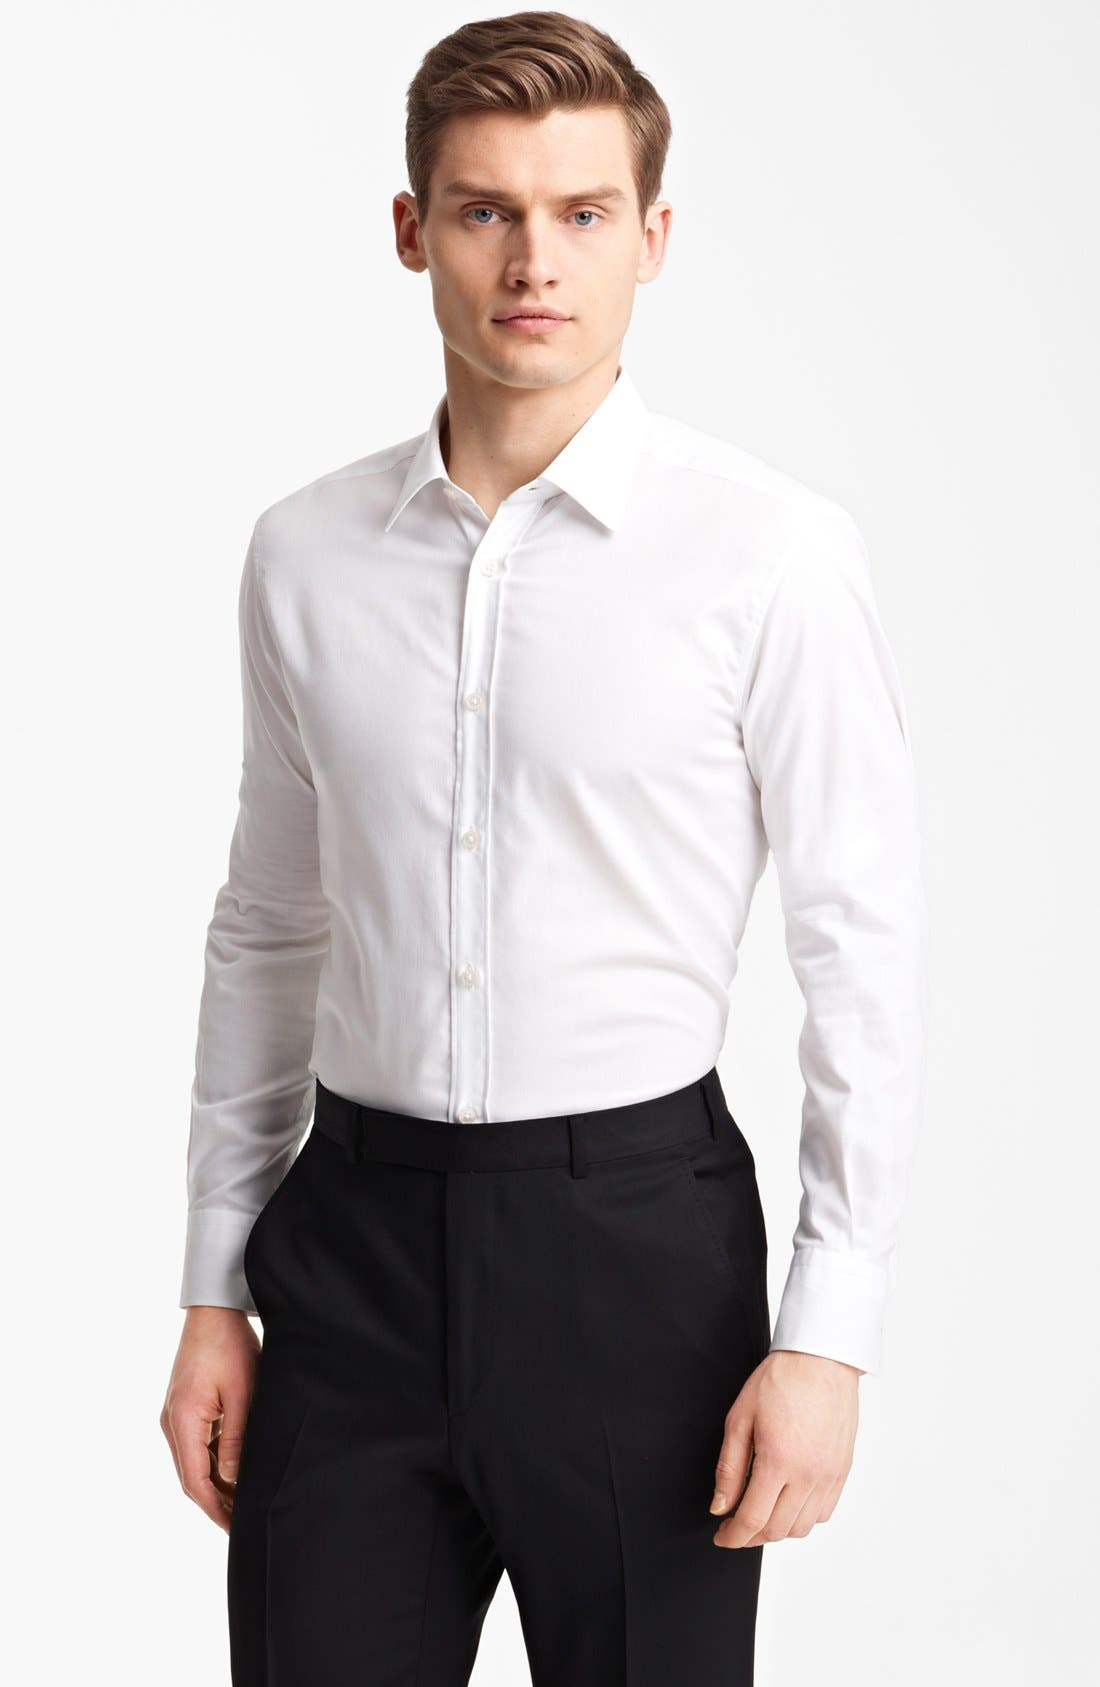 Alternate Image 1 Selected - Z Zegna Micro Pinpoint Cotton Dress Shirt